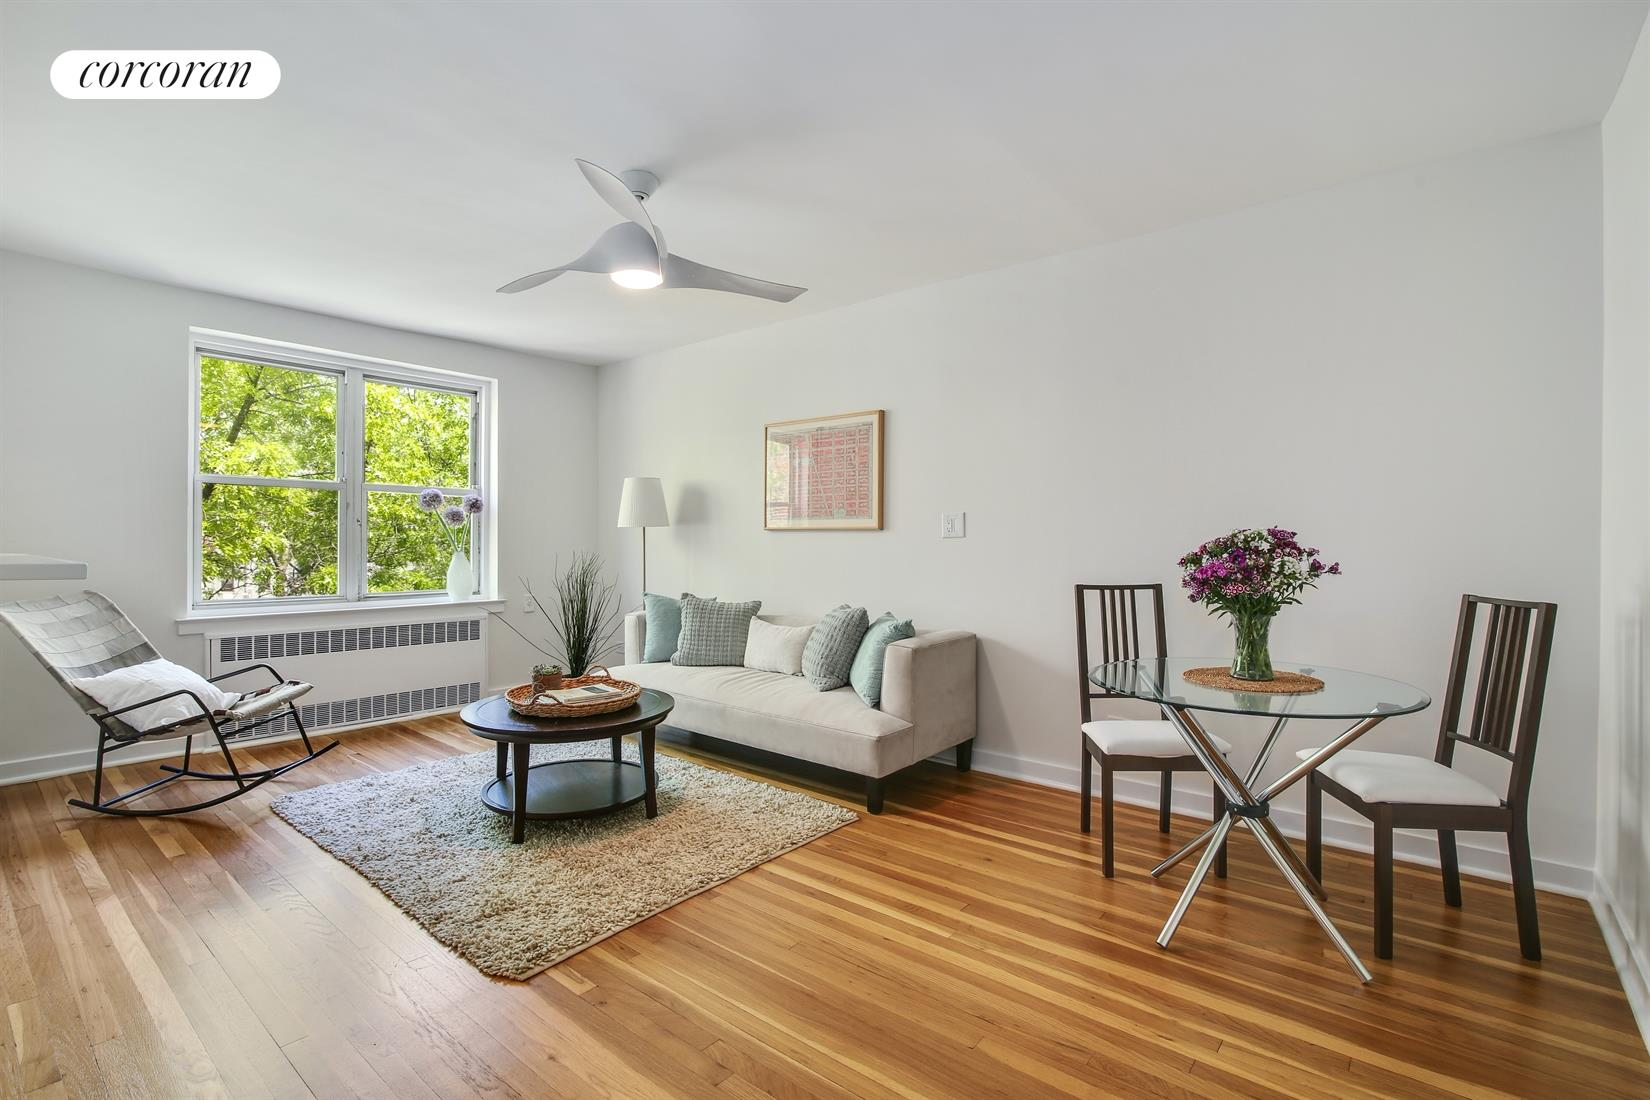 220 Congress Street, 6F, Leafy living room view